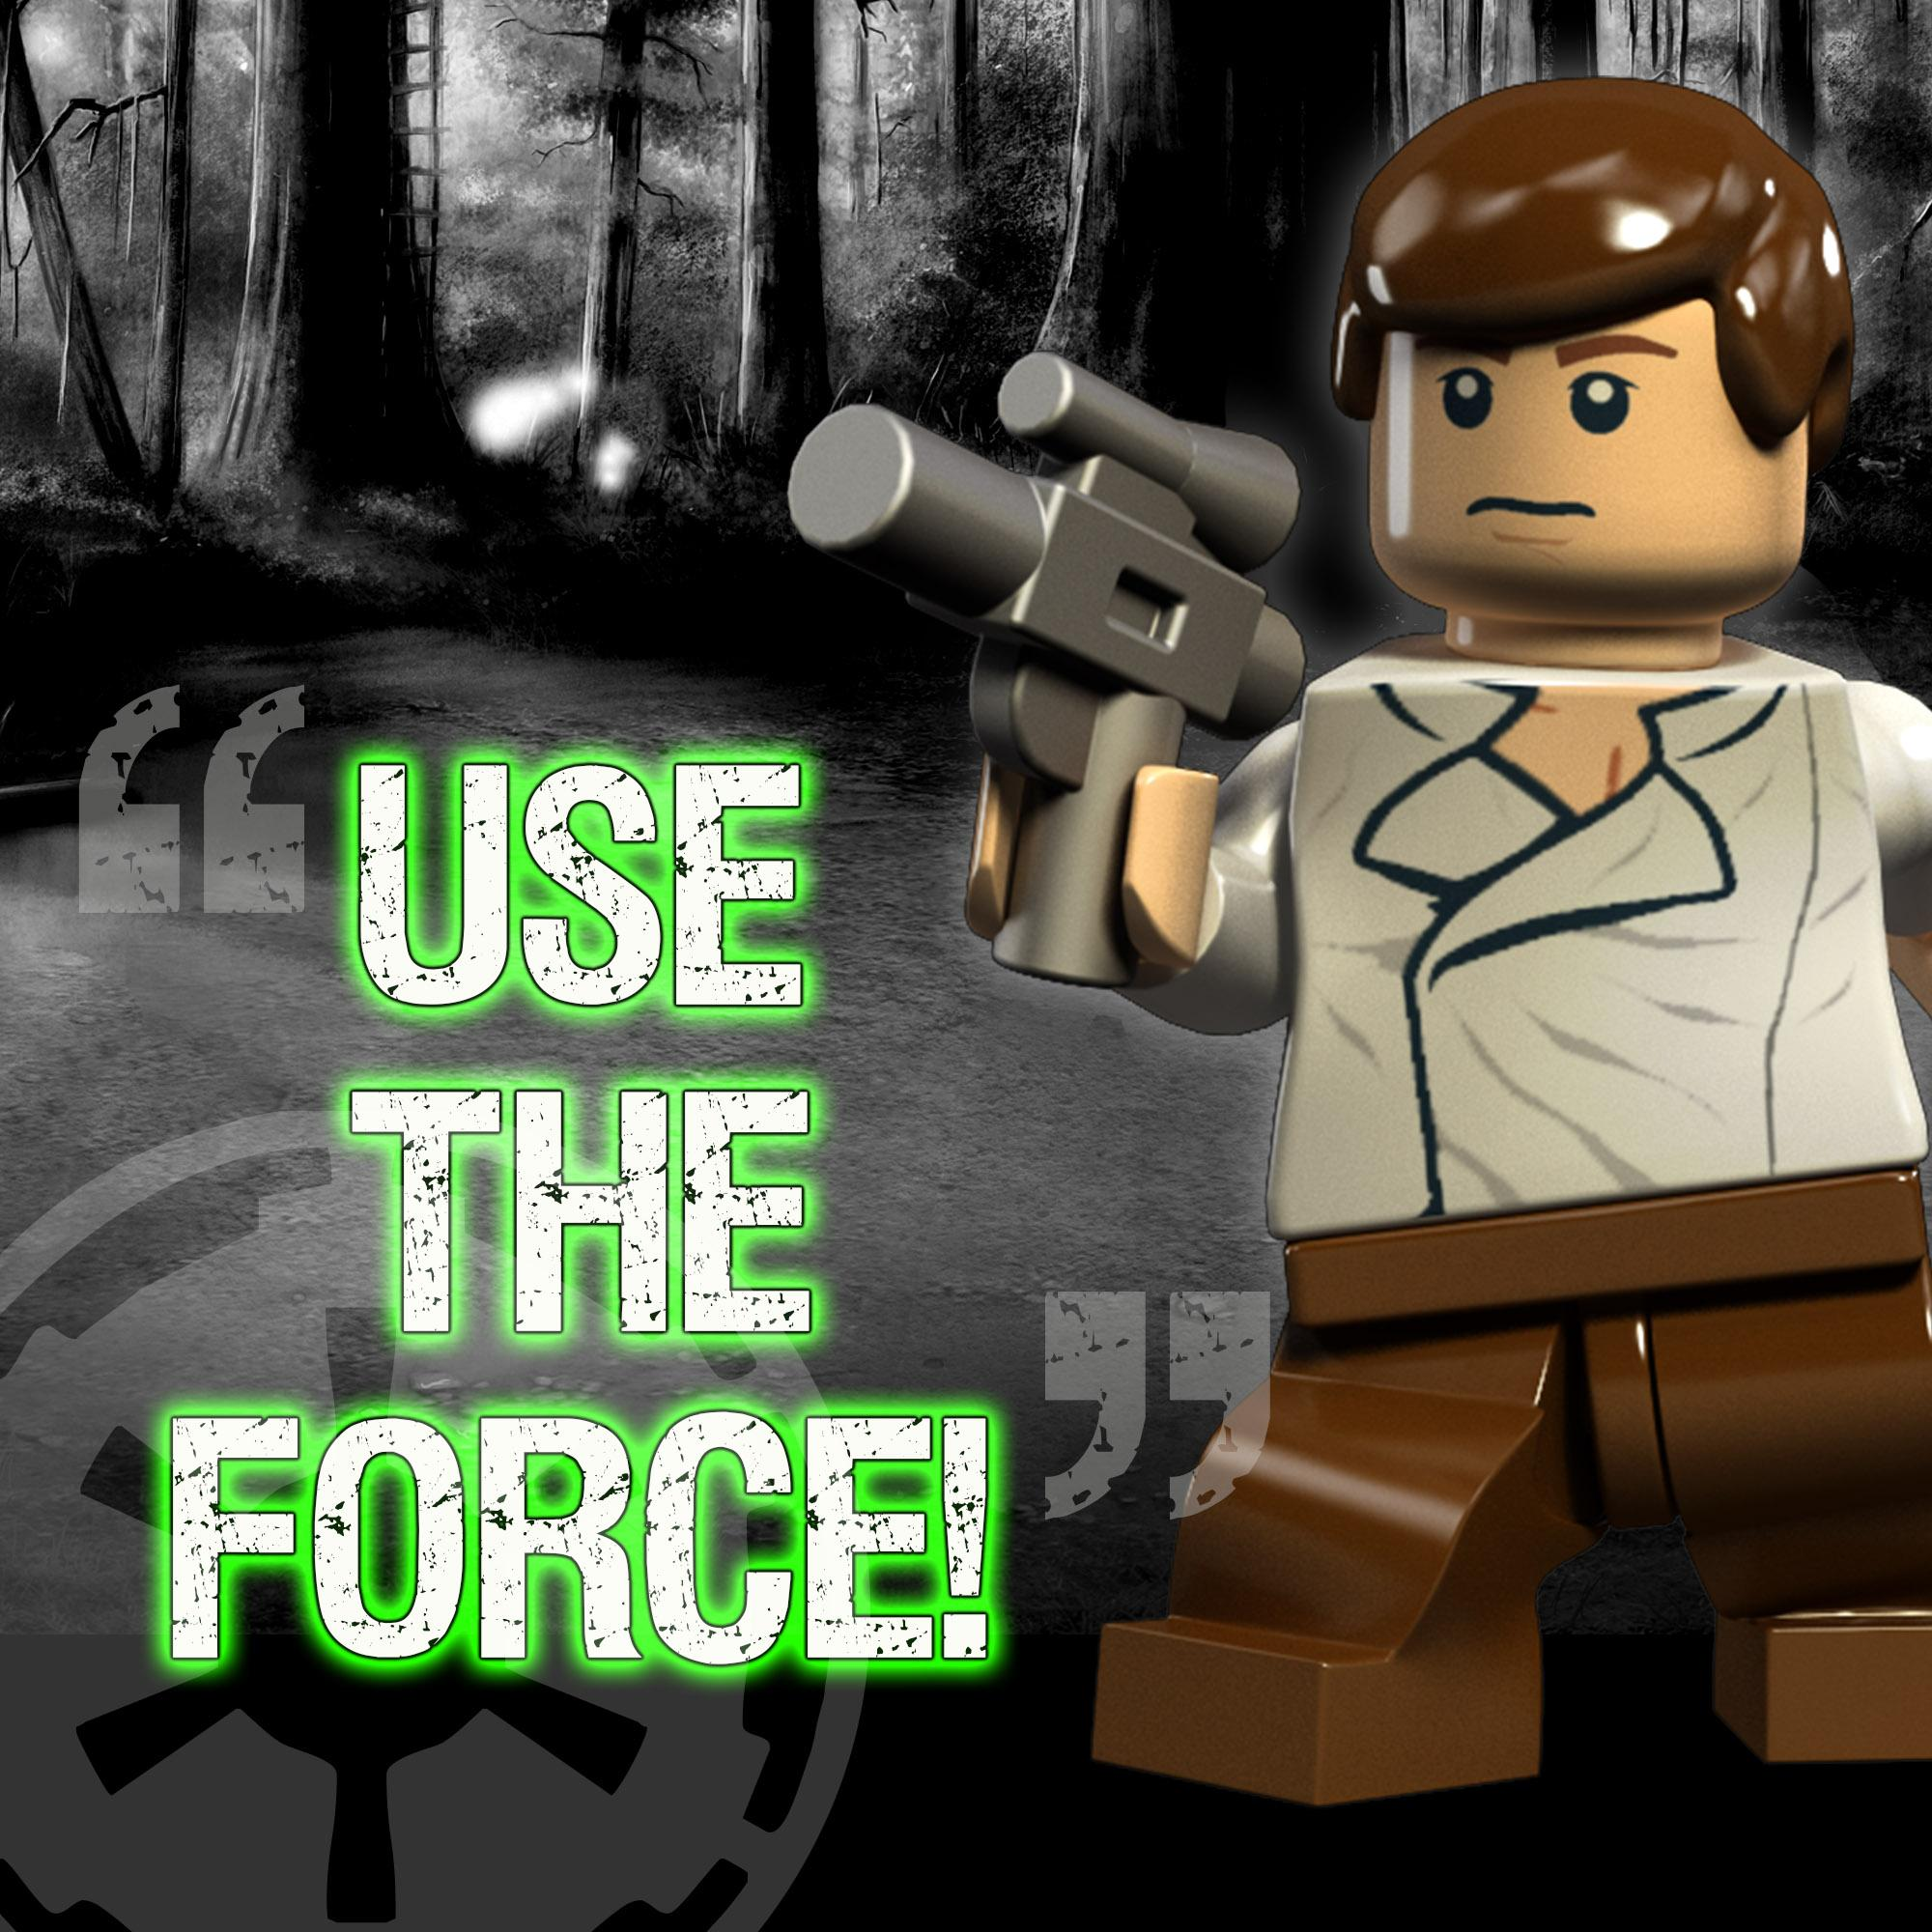 Lego On Twitter Uk Send Us Your Lego Starwars Creations Using Goldenbrickies And You Could Win Some Awesome Prizes Http T Co Gzoqambuke Here we are afraid of the implications of deep fakes and fox news is photoshopping propaganda with the subtlety of a shitpost. twitter